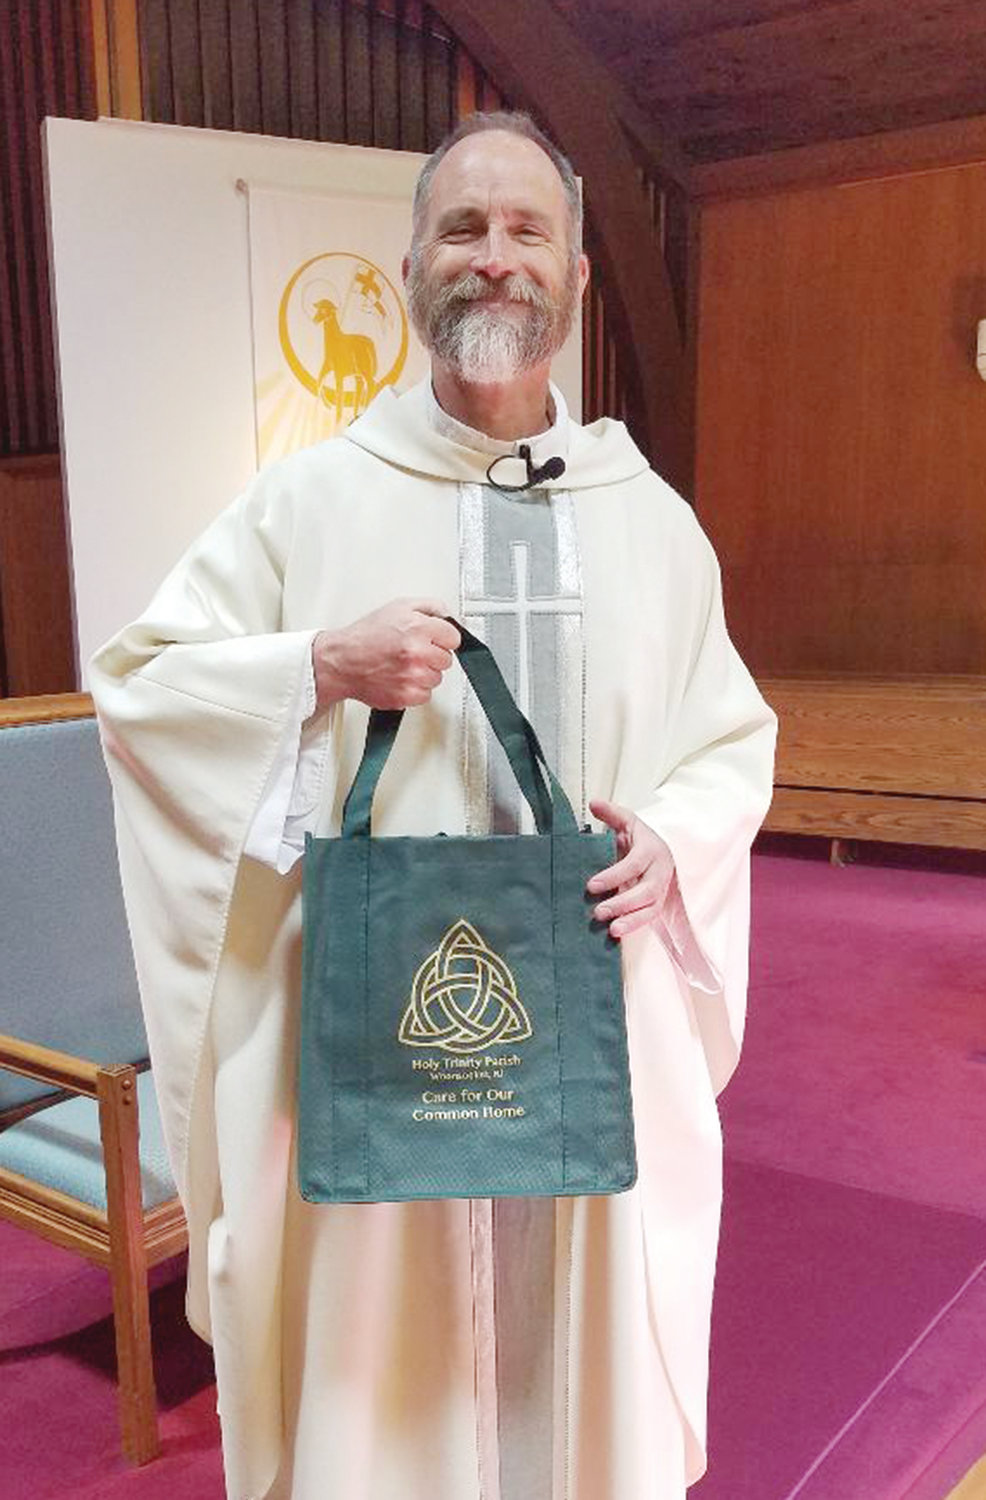 "Father Daniel J. Sweet, pastor of Holy Trinity Parish, holds one of the reusable mesh shopping bags designed and purchased by the parish's Social Justice Committee to promote unity among the newly converged faithful from the three different churches and to express their shared commitment to be good stewards of the Earth. Adorned with the parish's Trinitarian logo, the bags also serve as tools of evangelization, even when the parishioners are grocery shopping. ""In our work for social justice and evangelization we can take small but powerful steps to address the needs of our human family,"" said parishioner Rob Robbio."